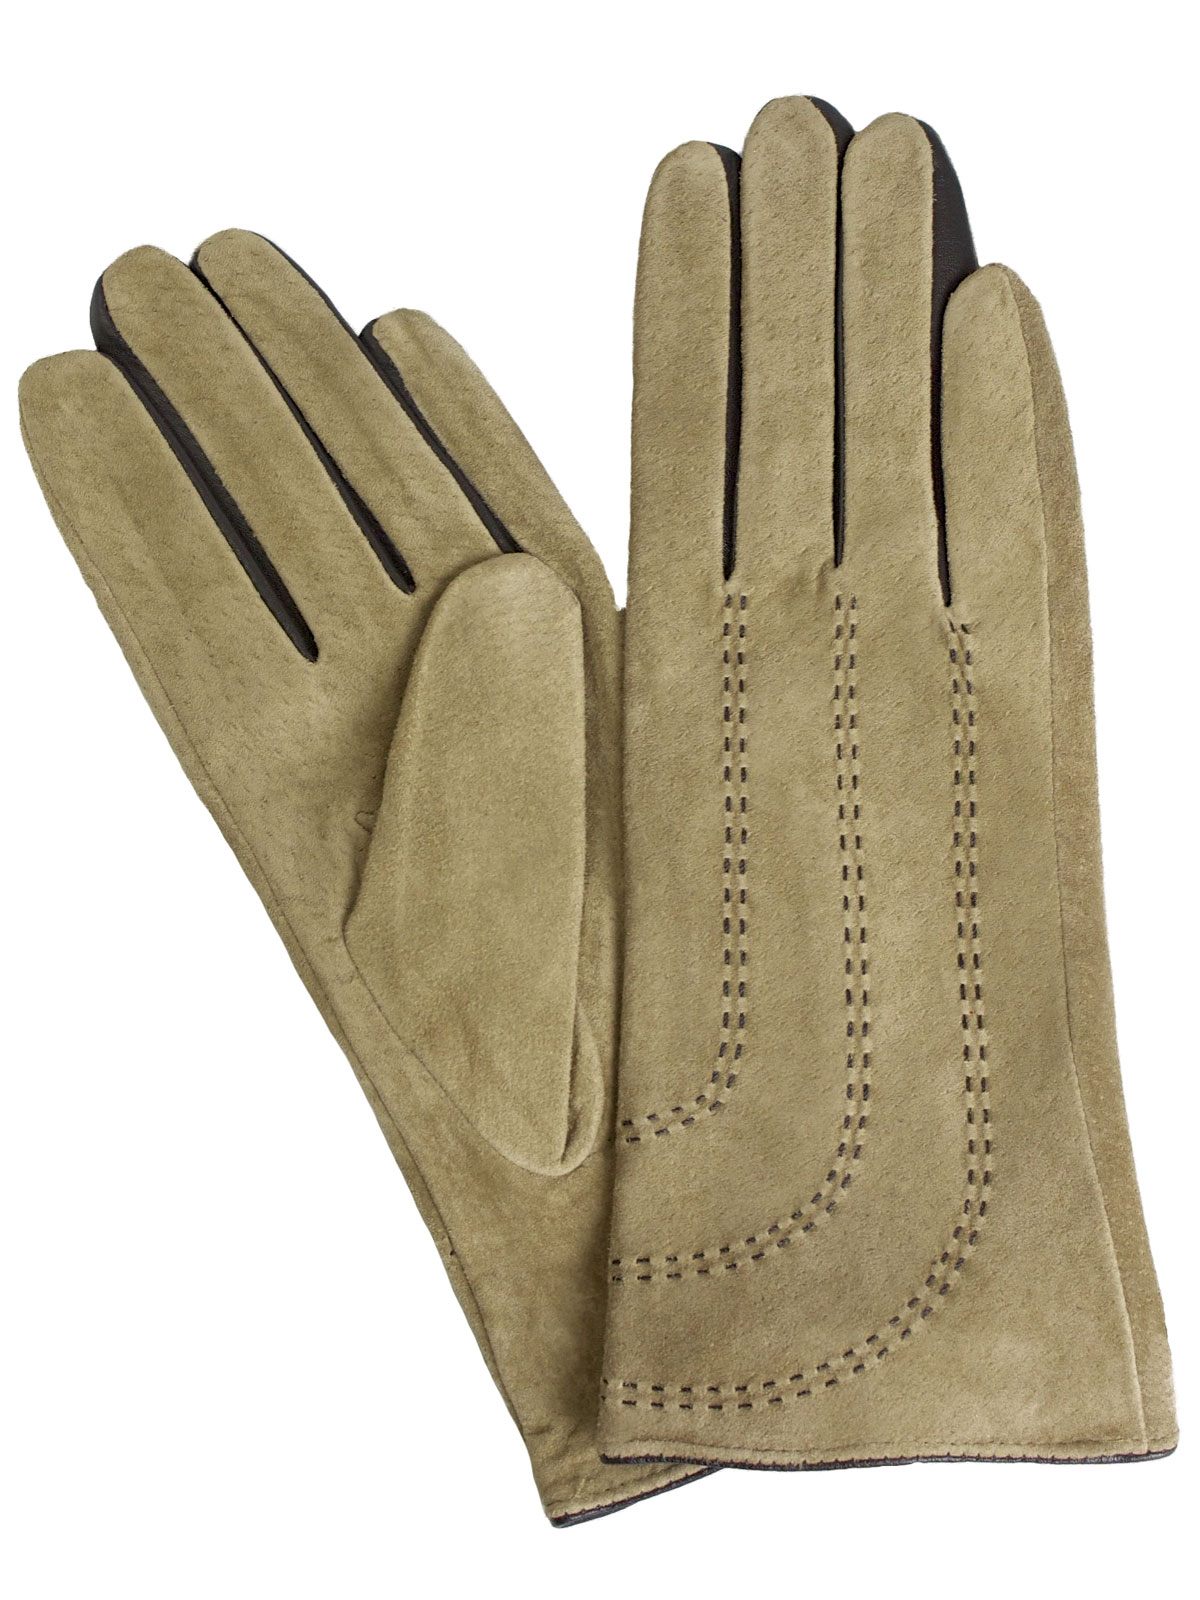 Pia Rossini Ladies Camel Suede Leather Gloves with contrast stitching